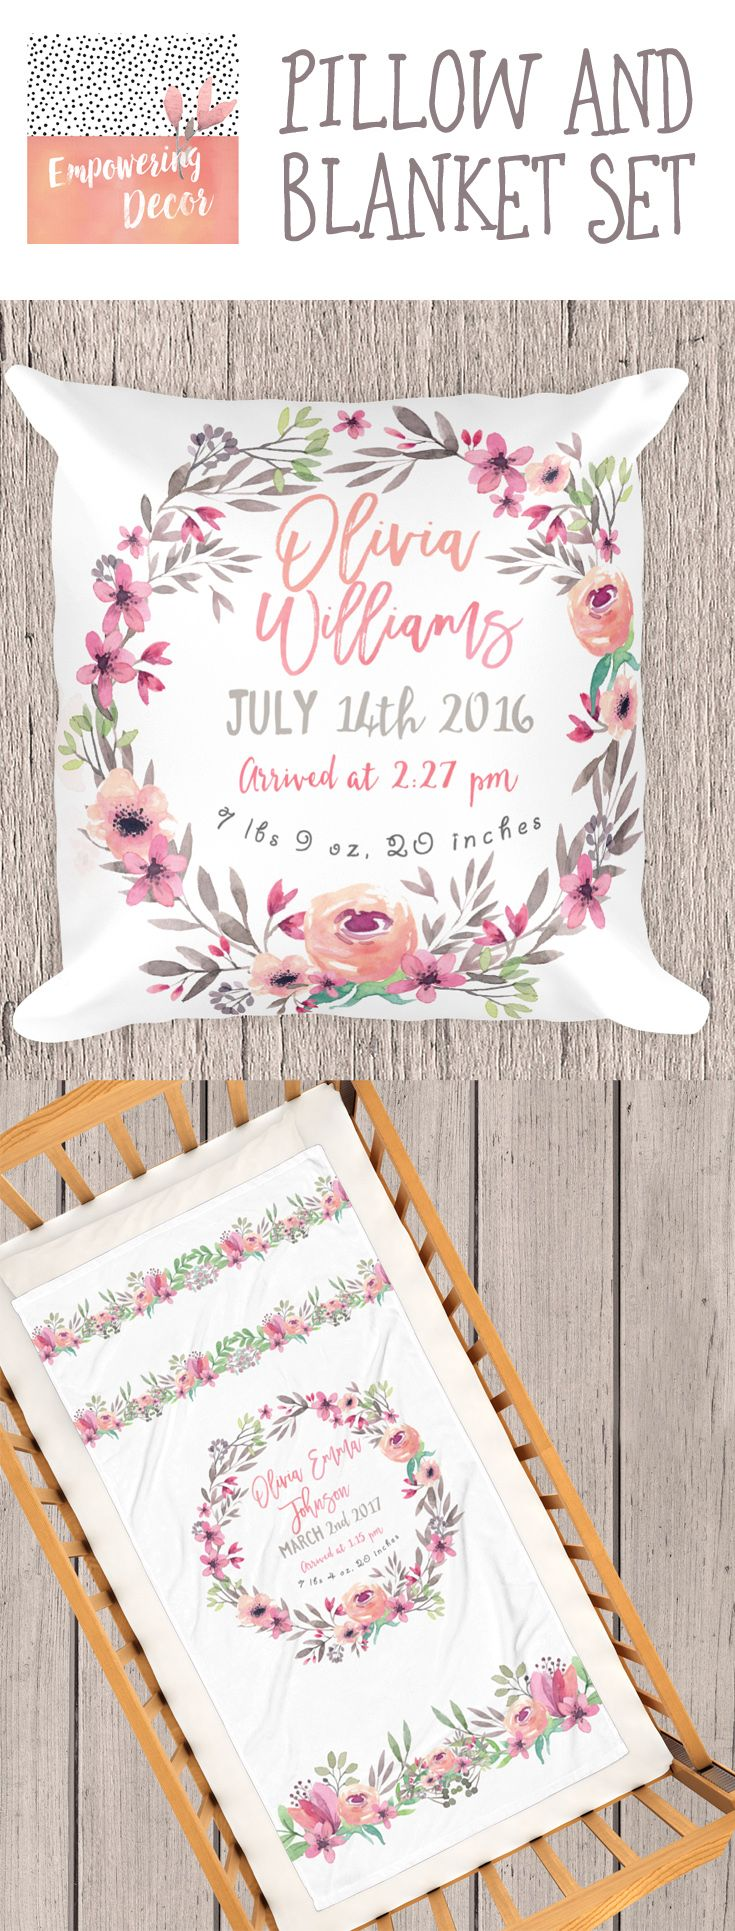 Set of floral pillow and blanket with customized baby birth stats, baby bedding, personalized baby blankets, baby girl blankets, toddler blanket, custom baby blankets, soft baby blankets, monogrammed baby blankets, blankets for babies, crib blanket, best baby blankets, monogram baby blanket, pink baby blanket, blanket baby, customized baby blankets, newborn blankets, grey baby blanket, white baby blanket, newborn baby blankets, designer baby blankets, customized baby blanket